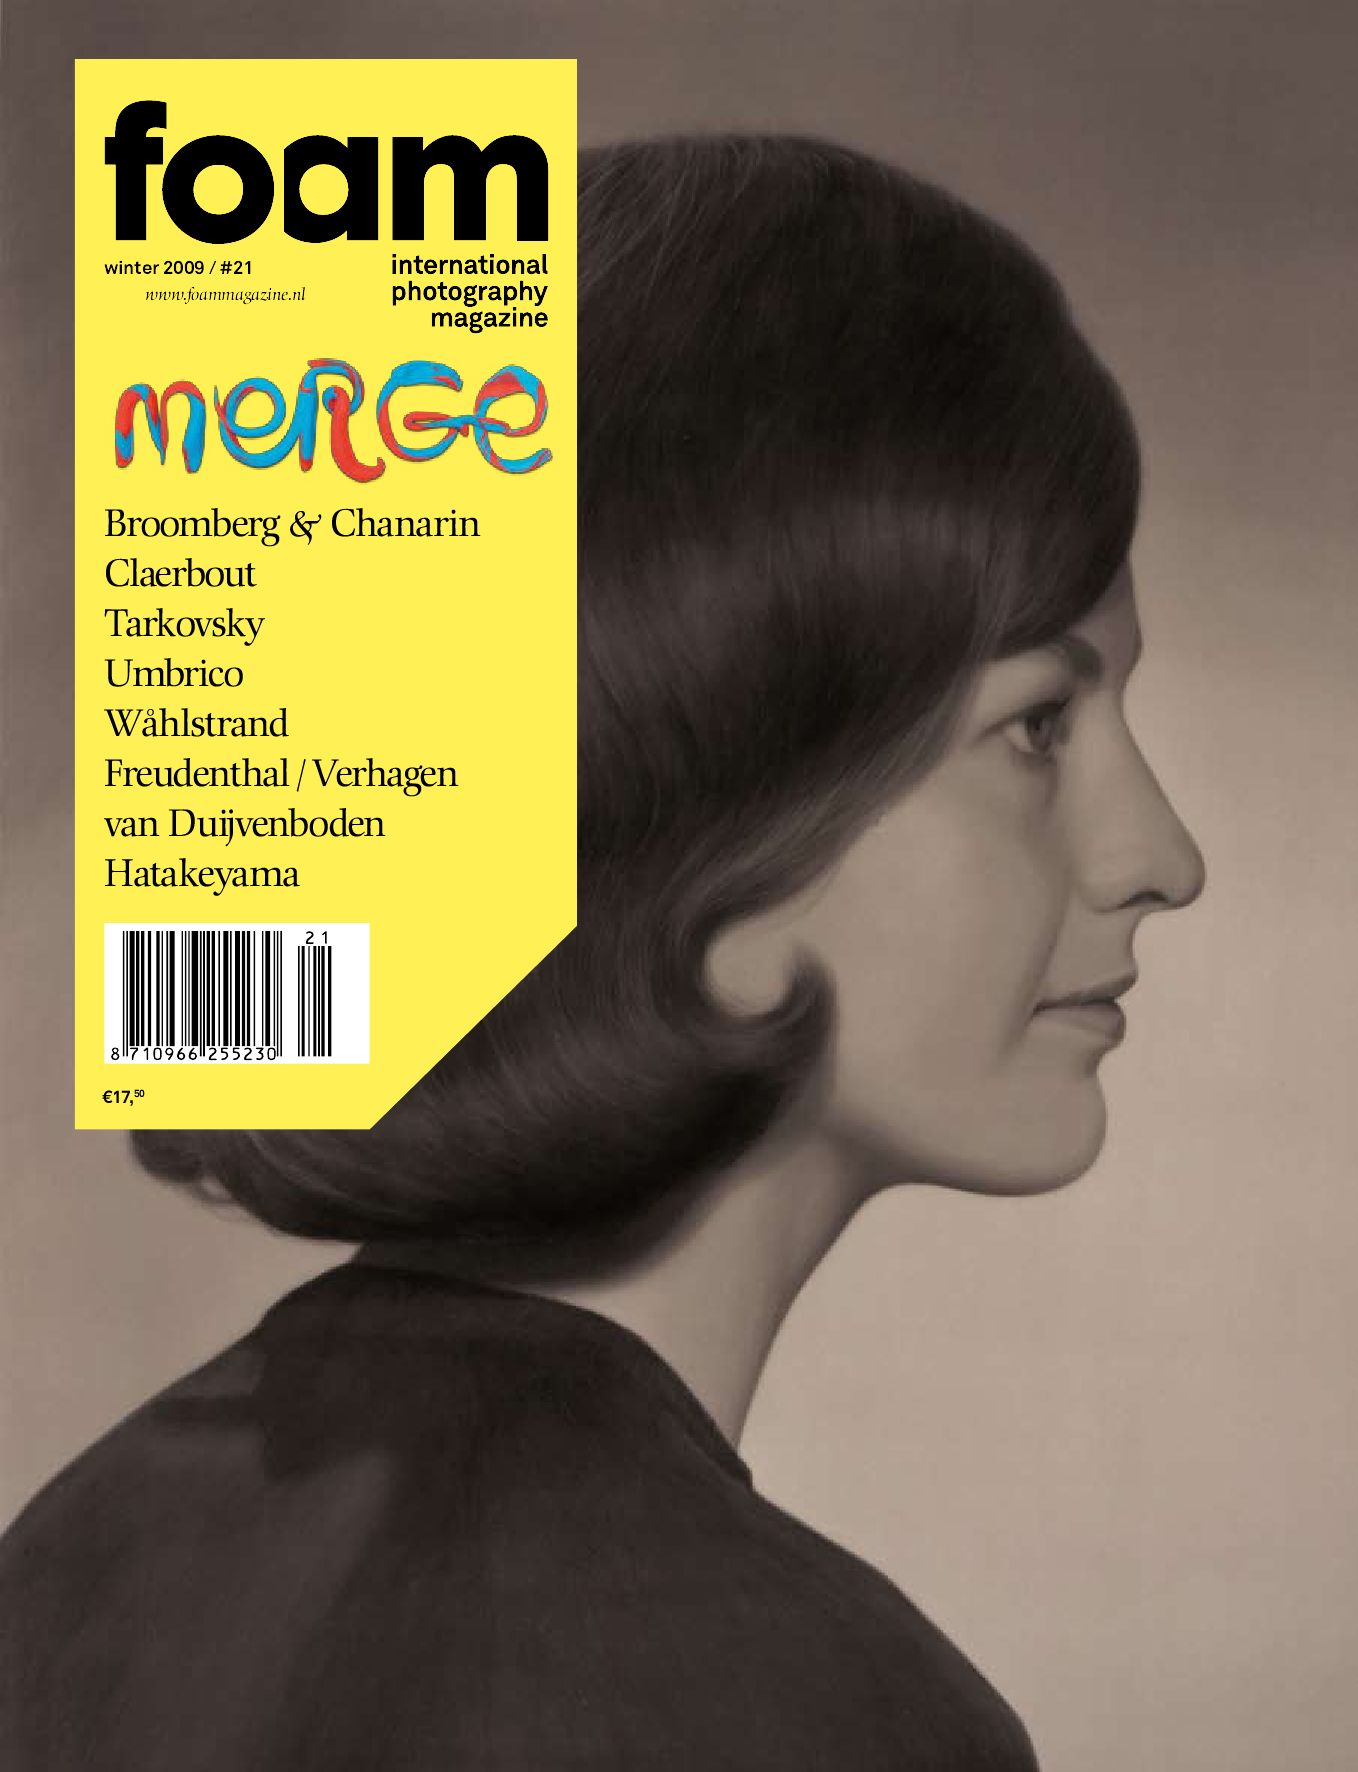 preview foam magazine issue 21 merge by foam magazine issuupreview foam magazine issue 21 merge